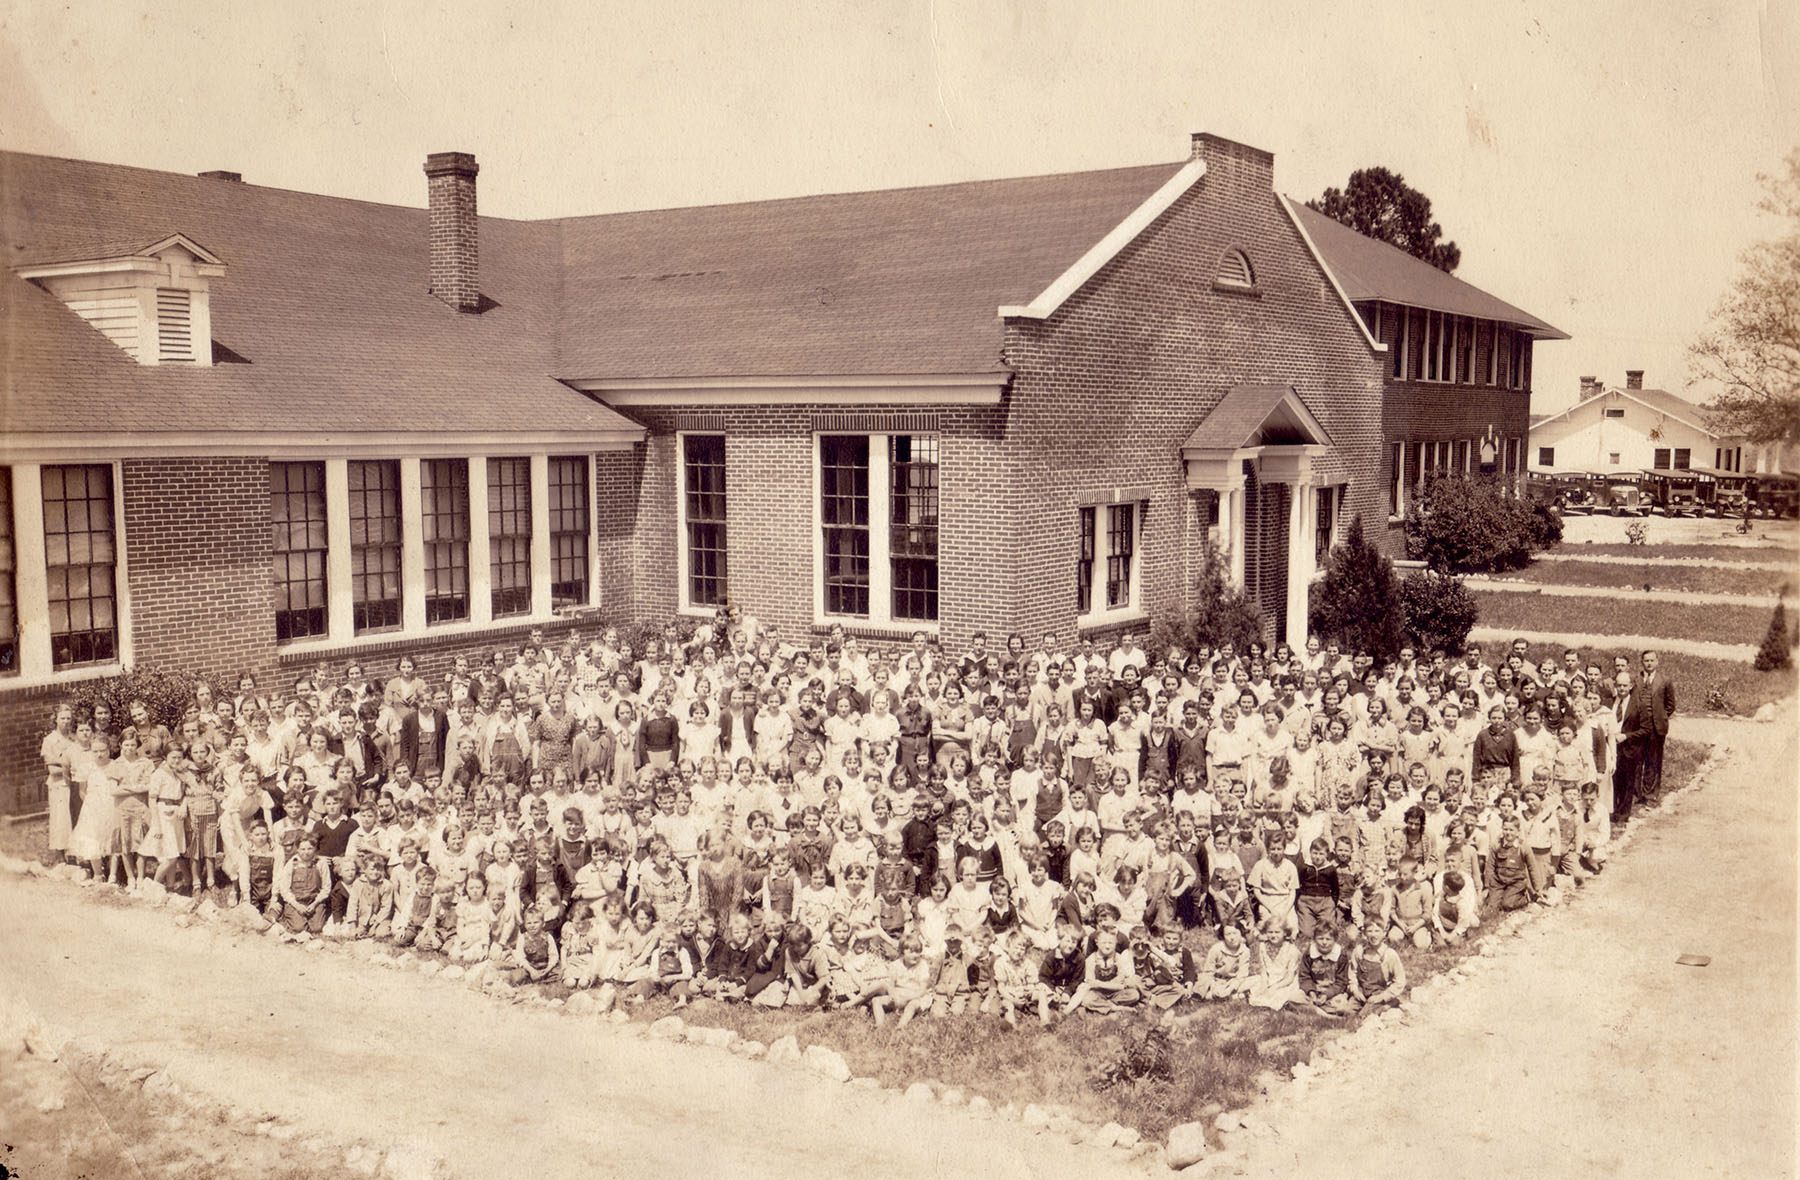 Blythewood School about 1930.